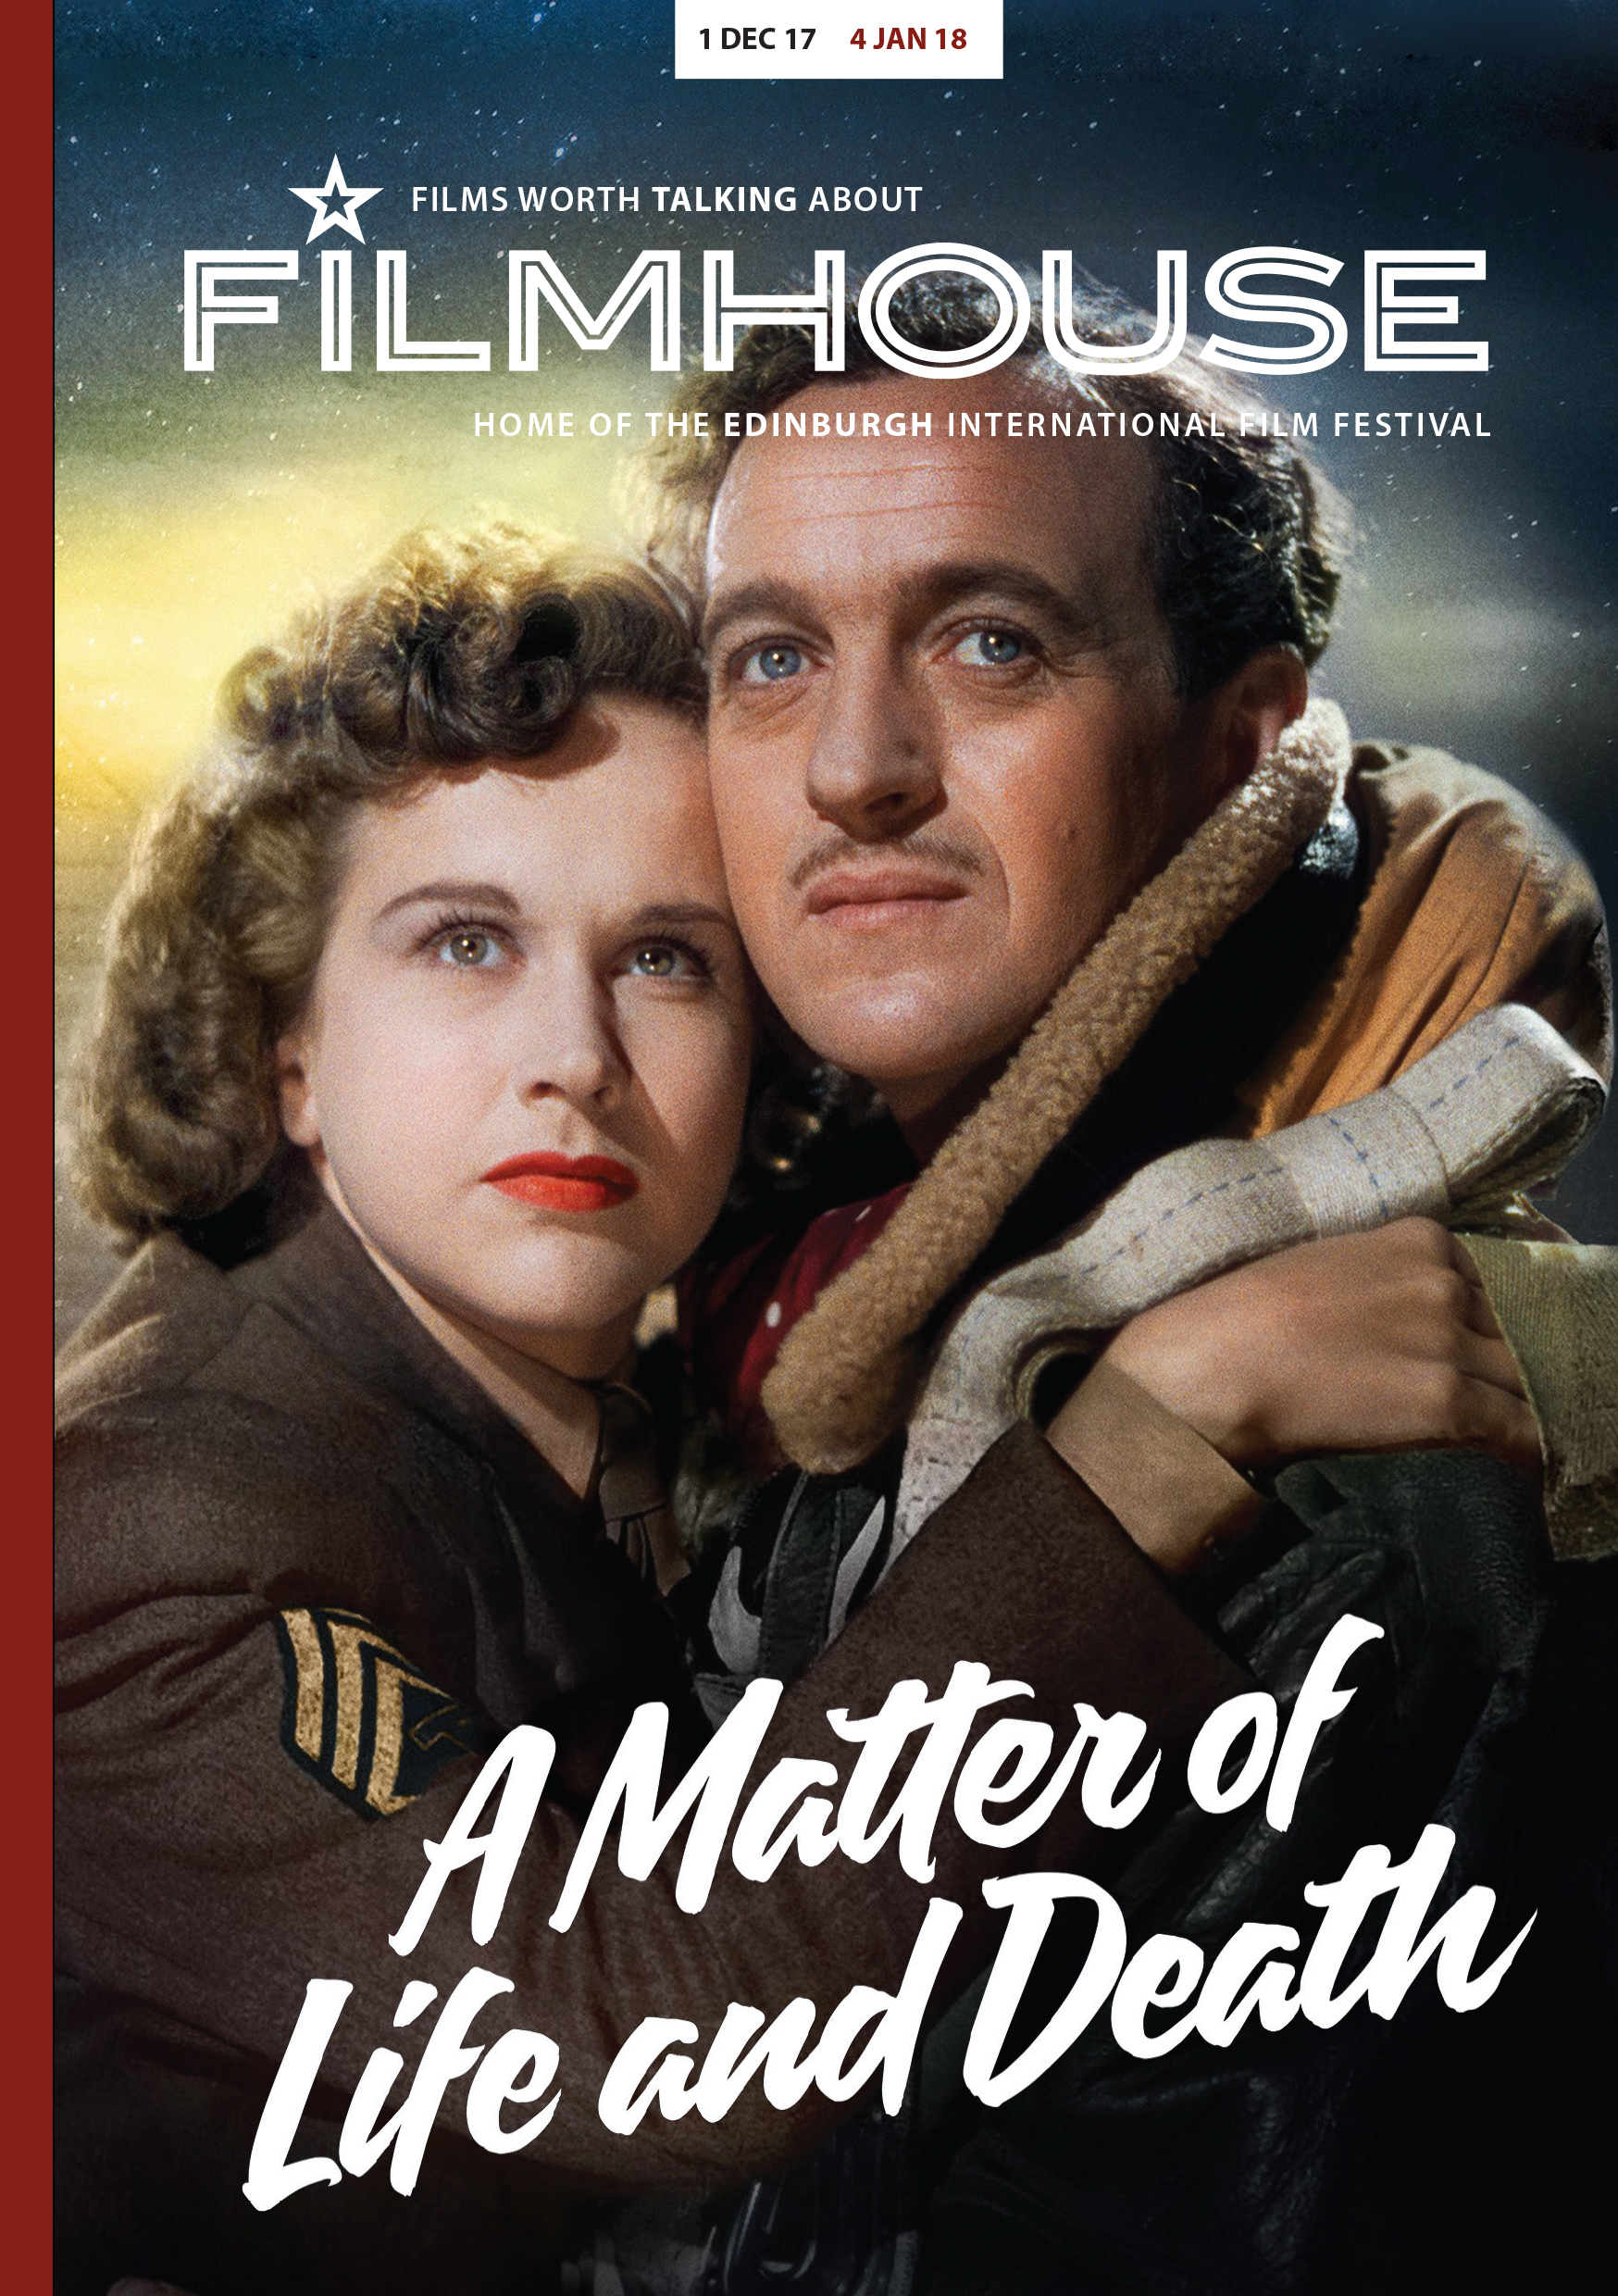 Filmhouse November 2017 brochure cover